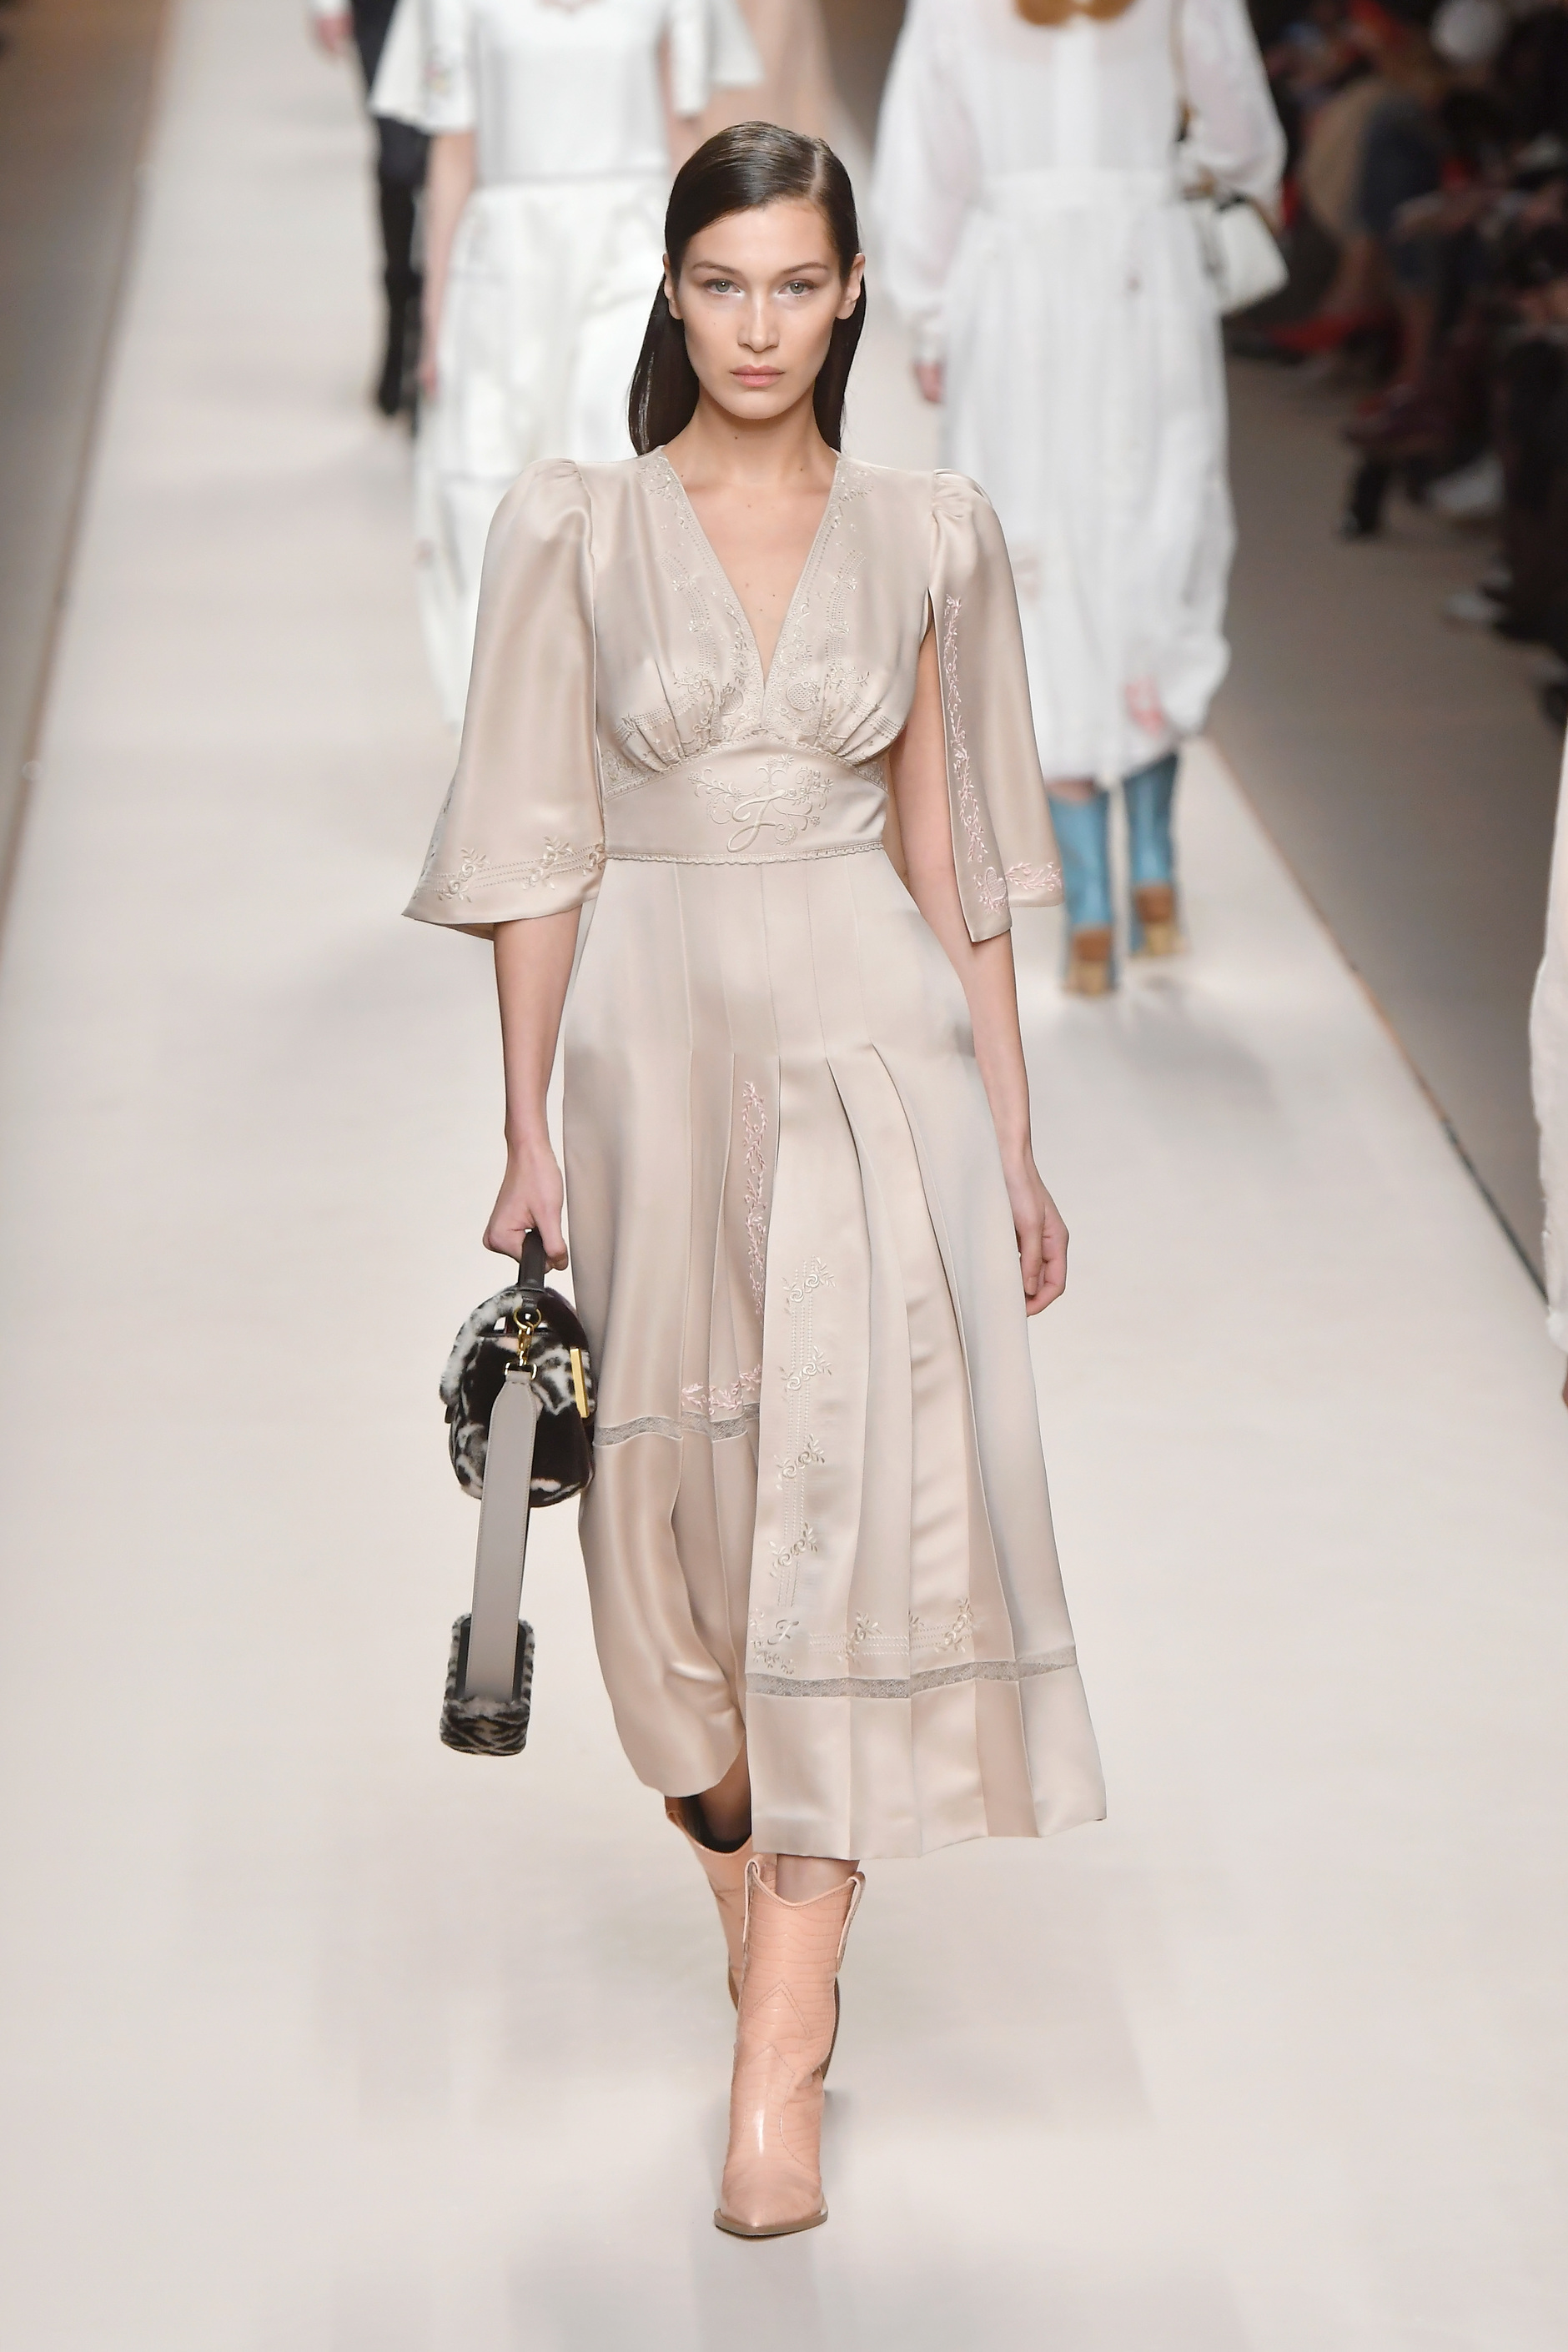 fef3f8781991b2 Milan Fashion Week  Fendi 2018 19 - Come into Blossom